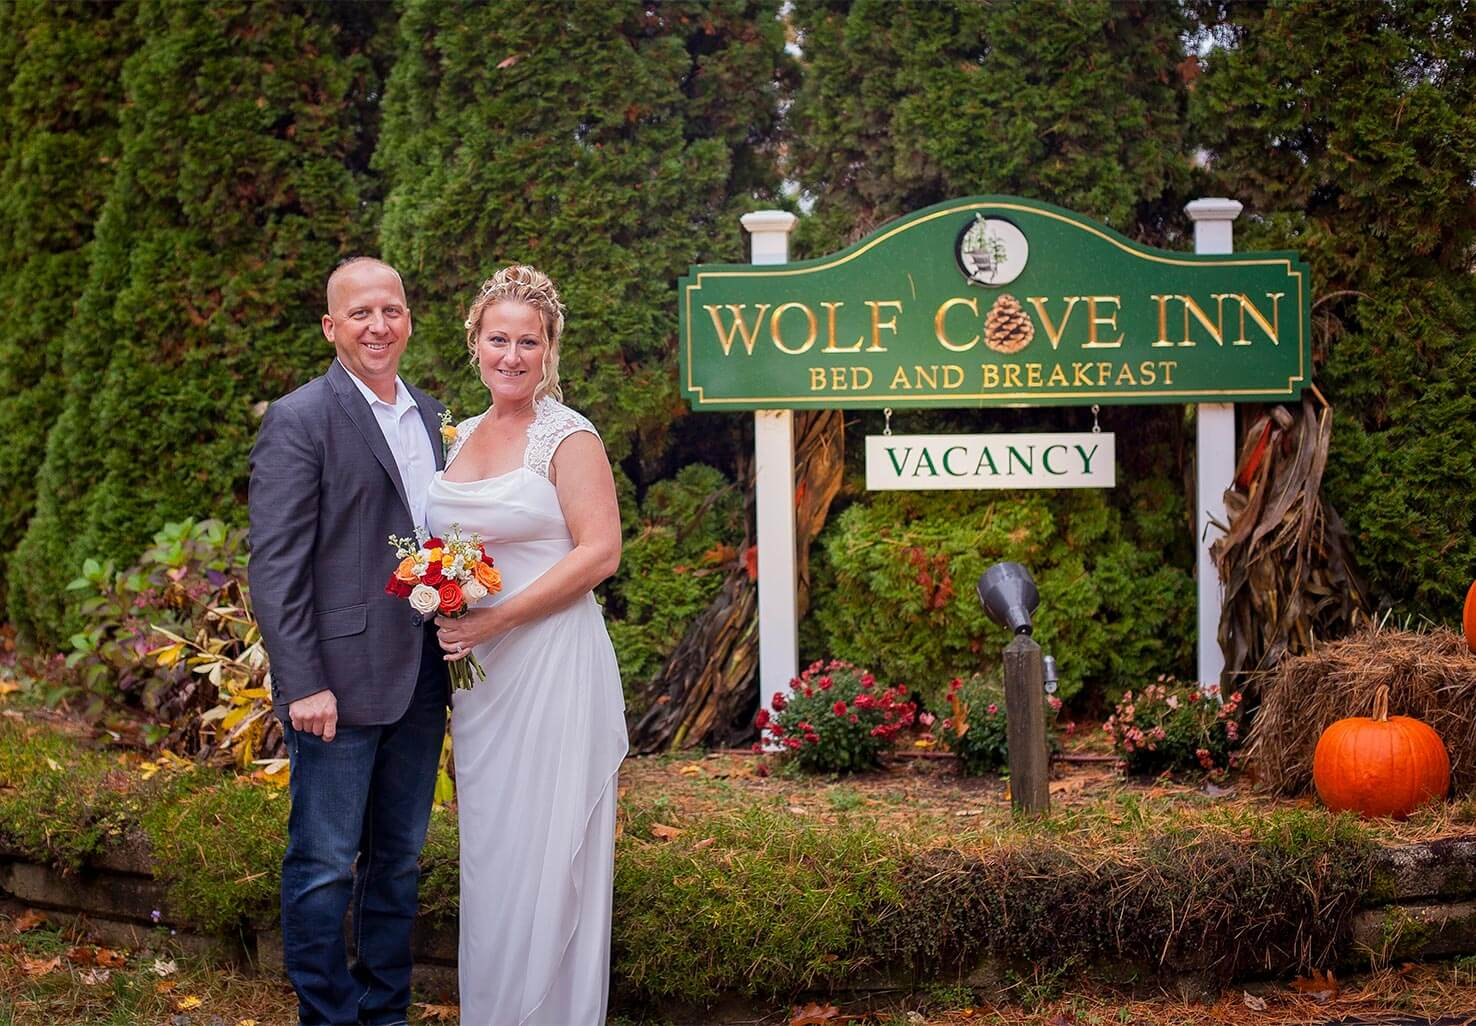 Elopement couple in front of Wolf Cove Inn sign